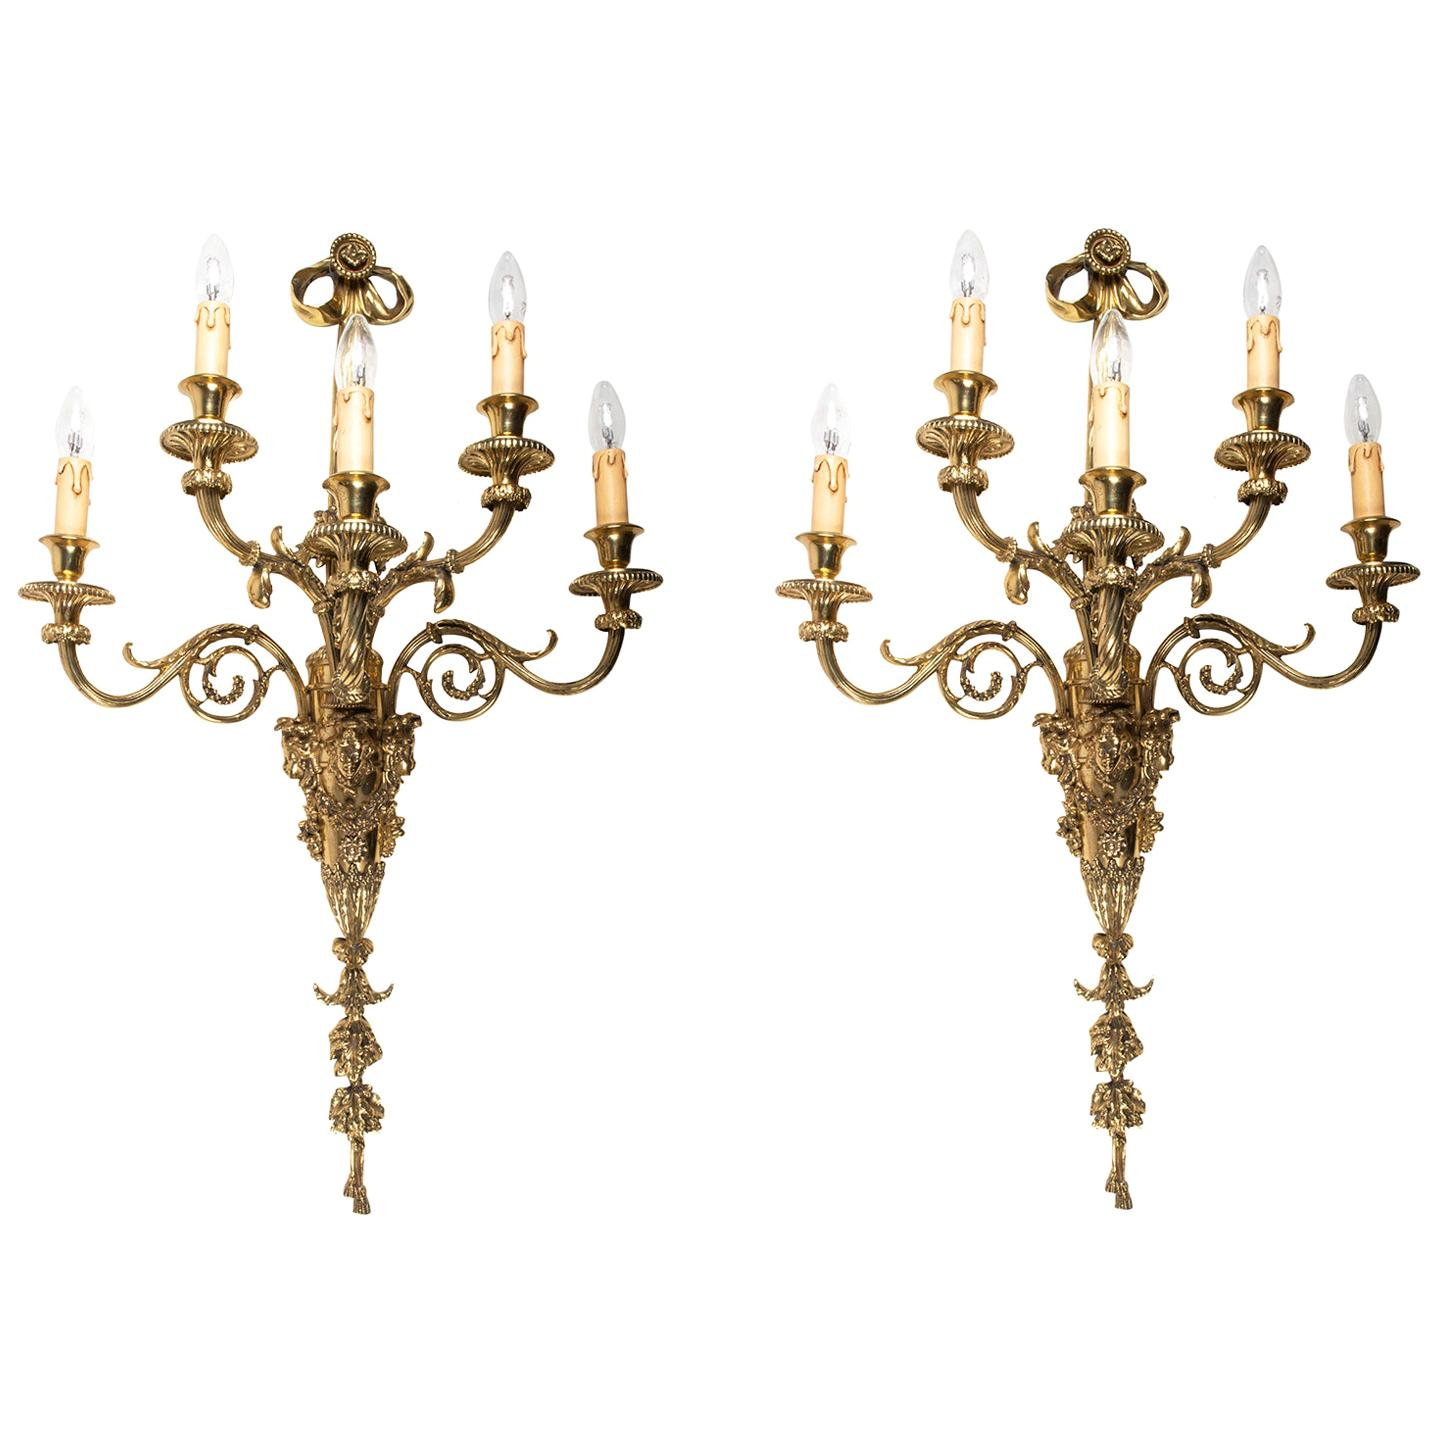 Large Pair of Classical Gilded Wall Lights, 19th Century